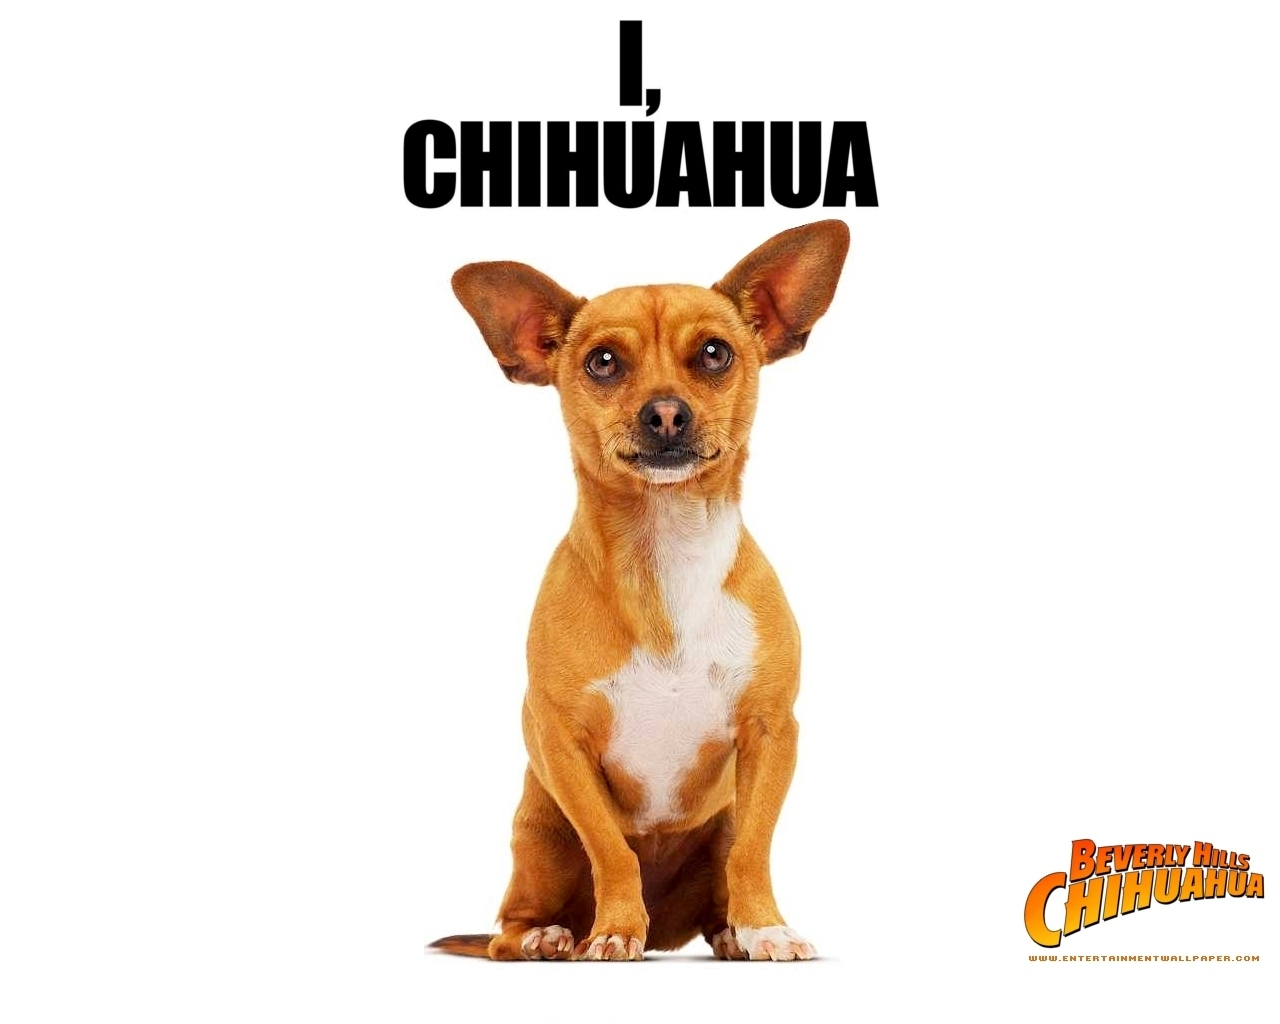 chihuahua movies movie dogs images beverley hills chihuahua hd wallpaper 4222